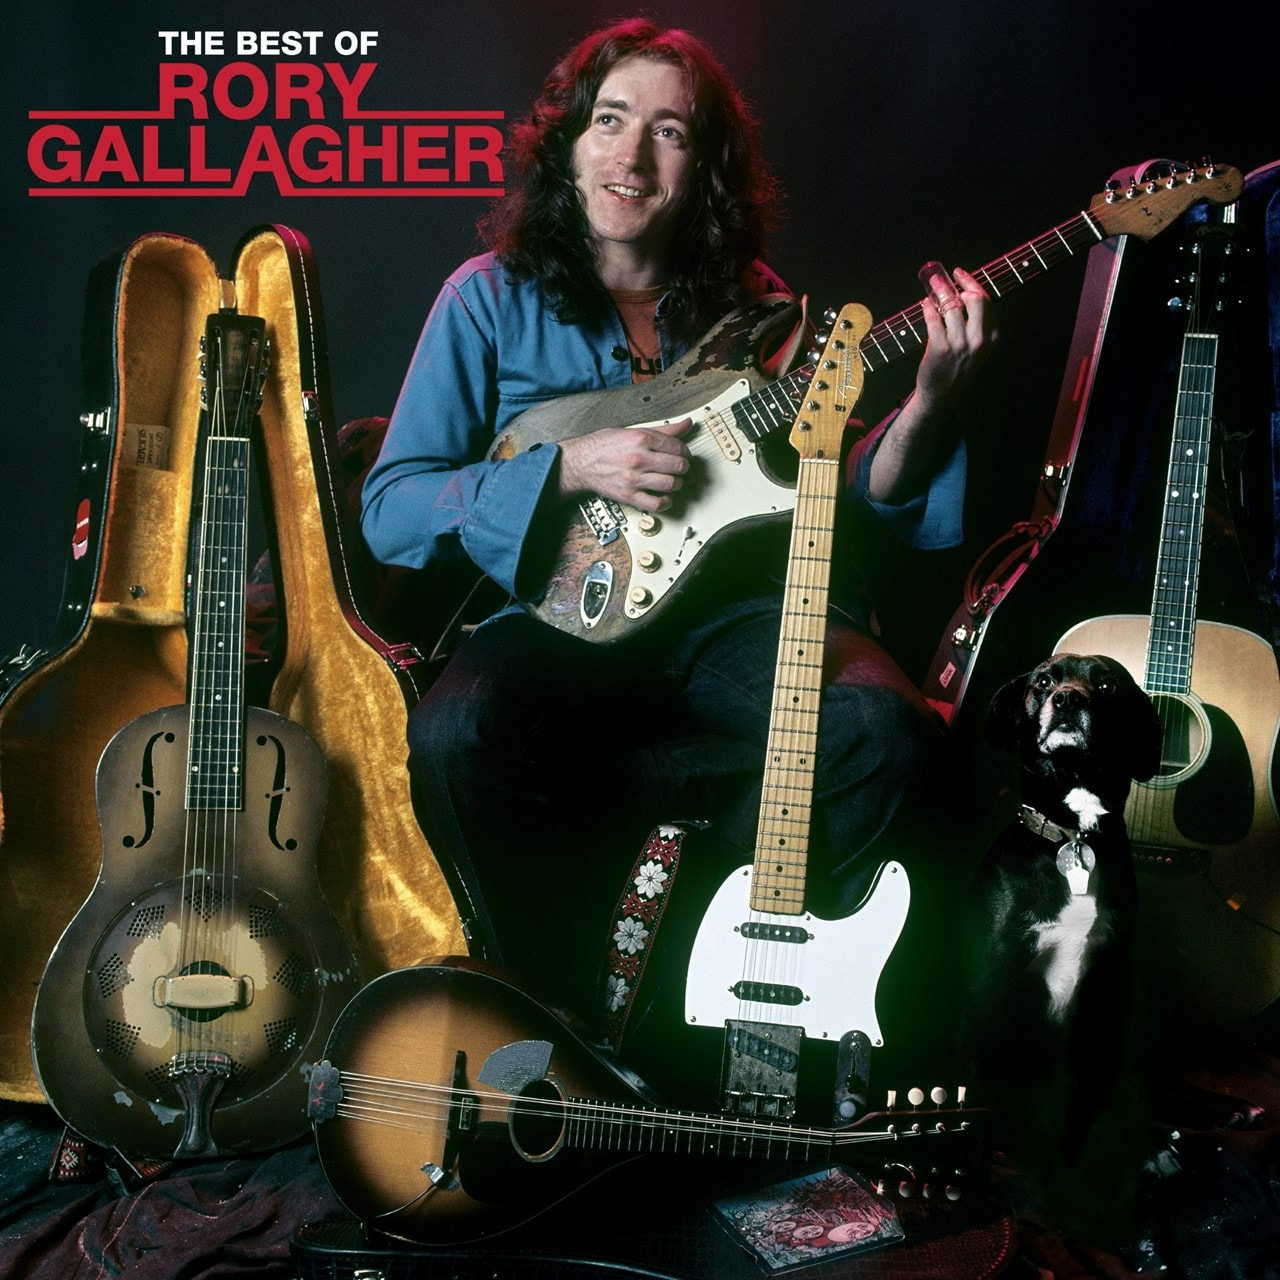 The Best of Rory Gallagher - 1